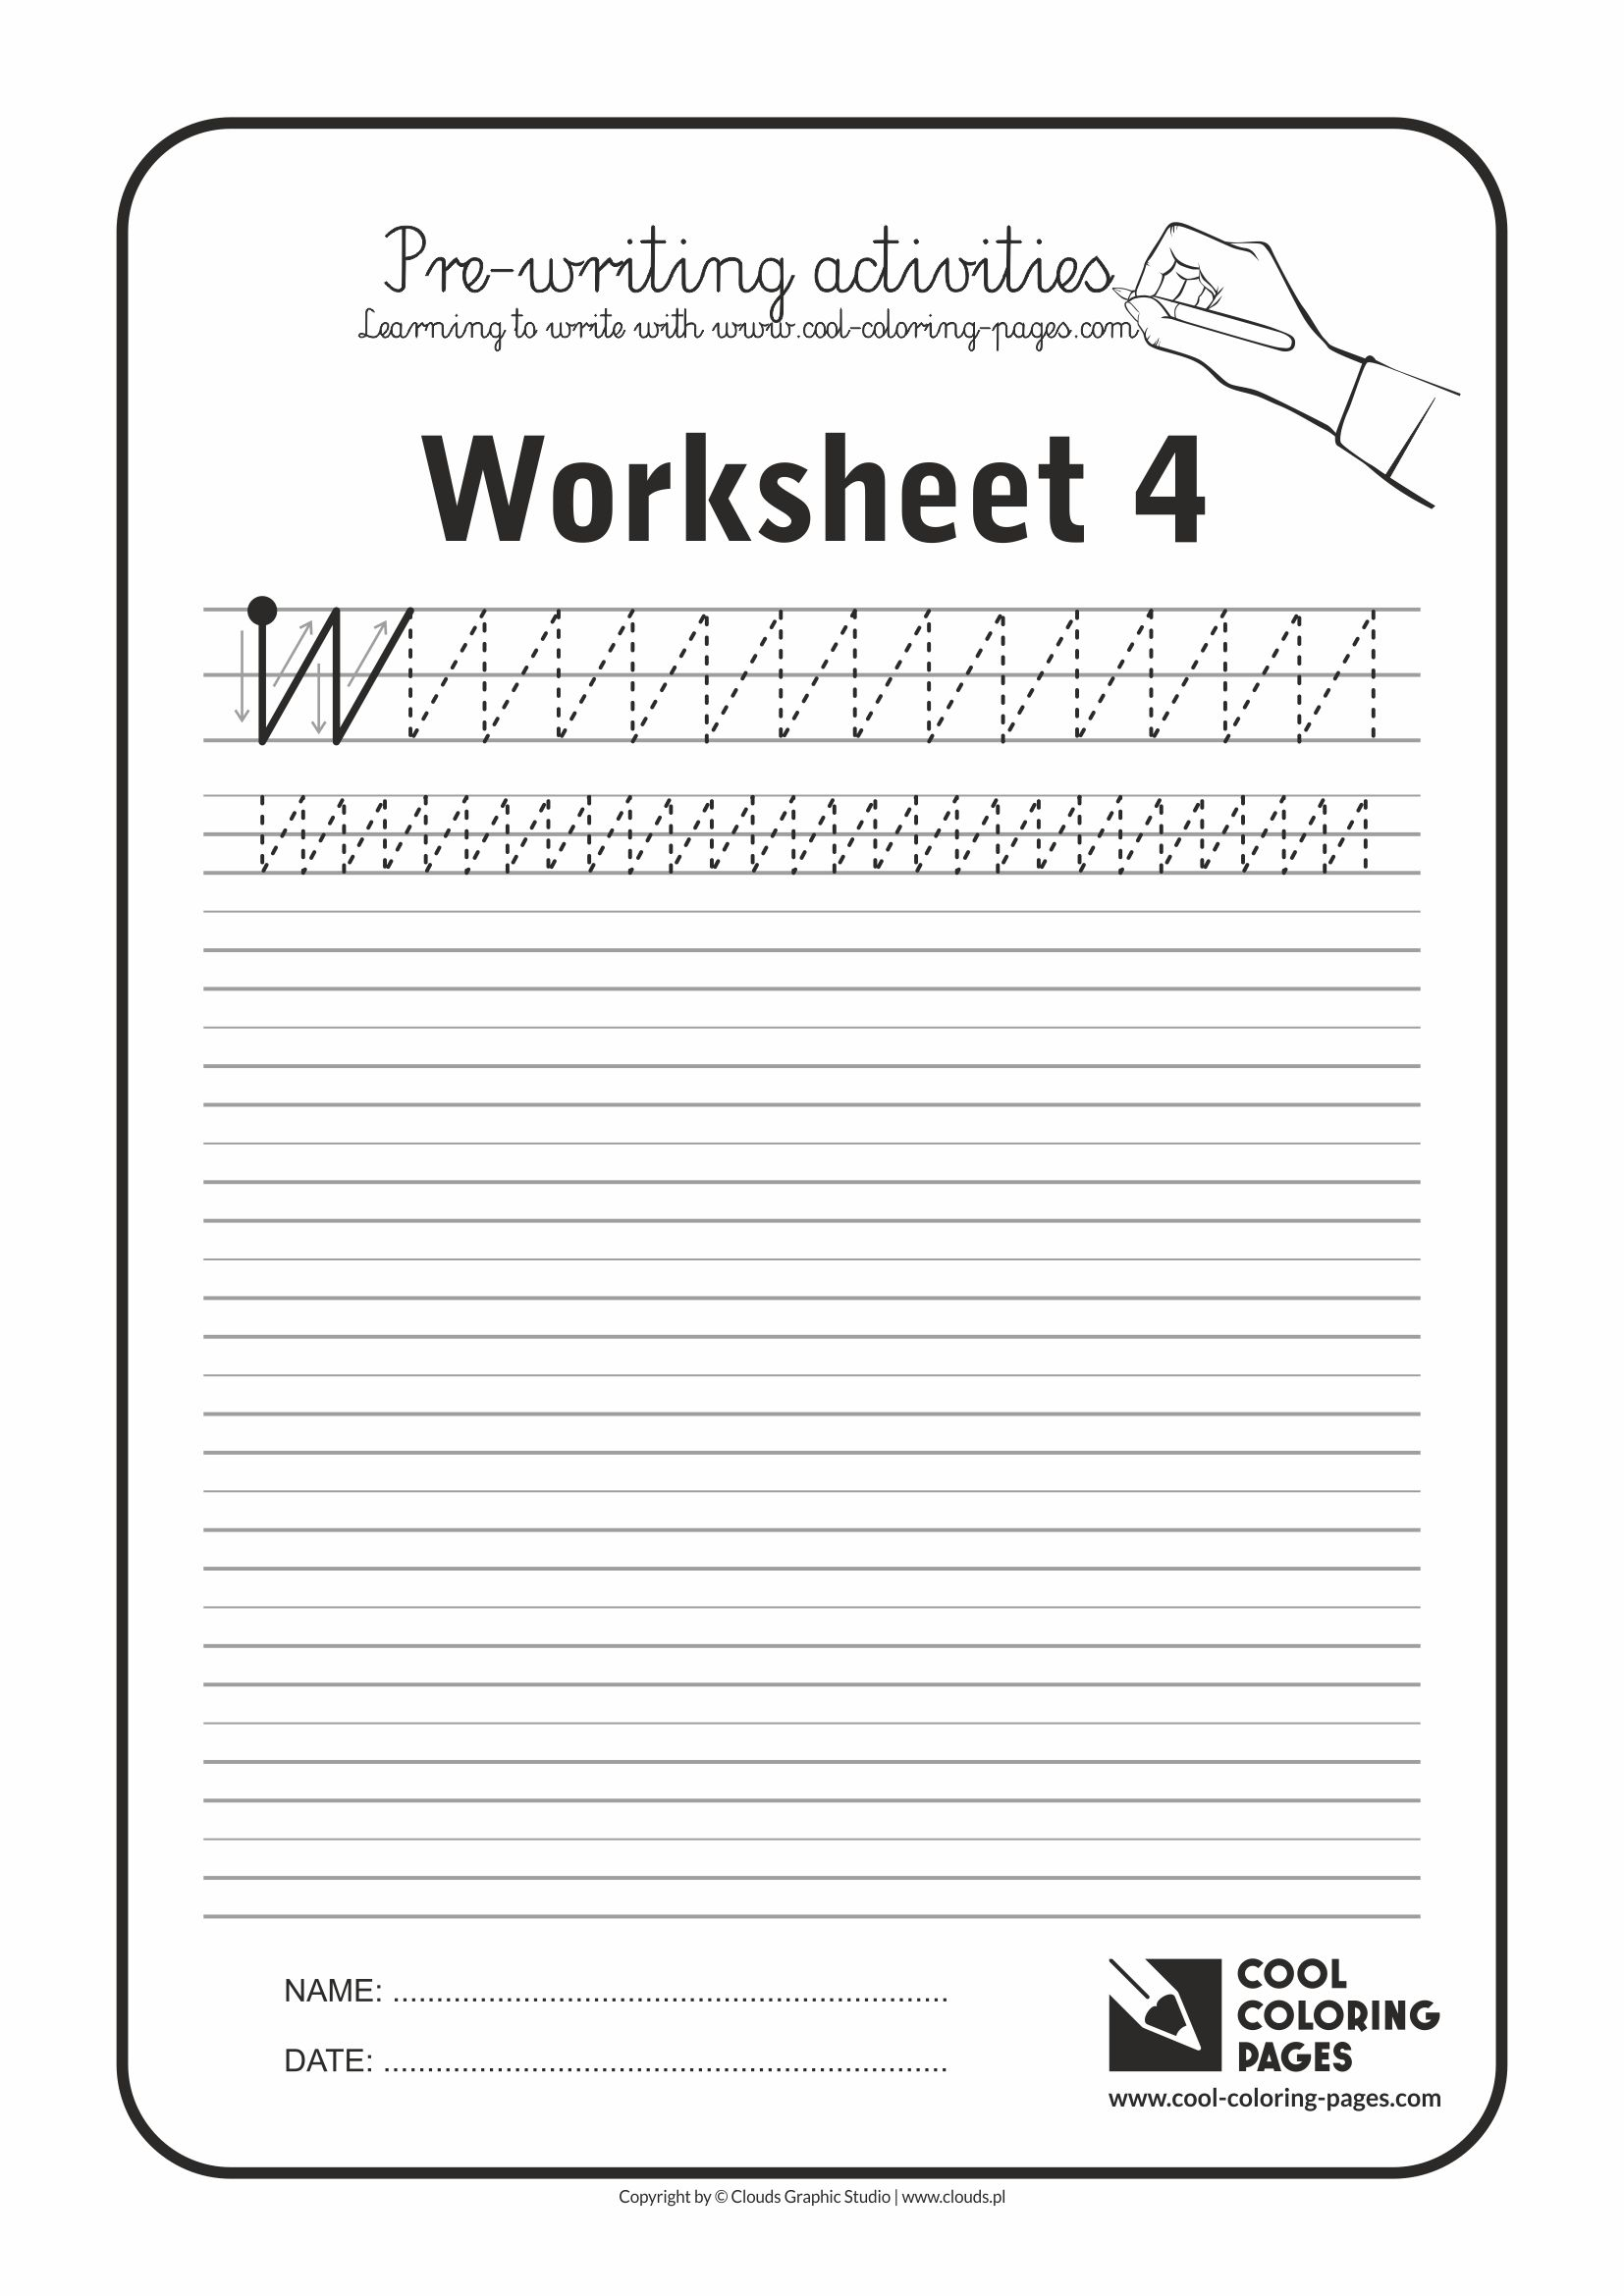 Cool Coloring Pages / Pre-writing activities / Worksheet no.4